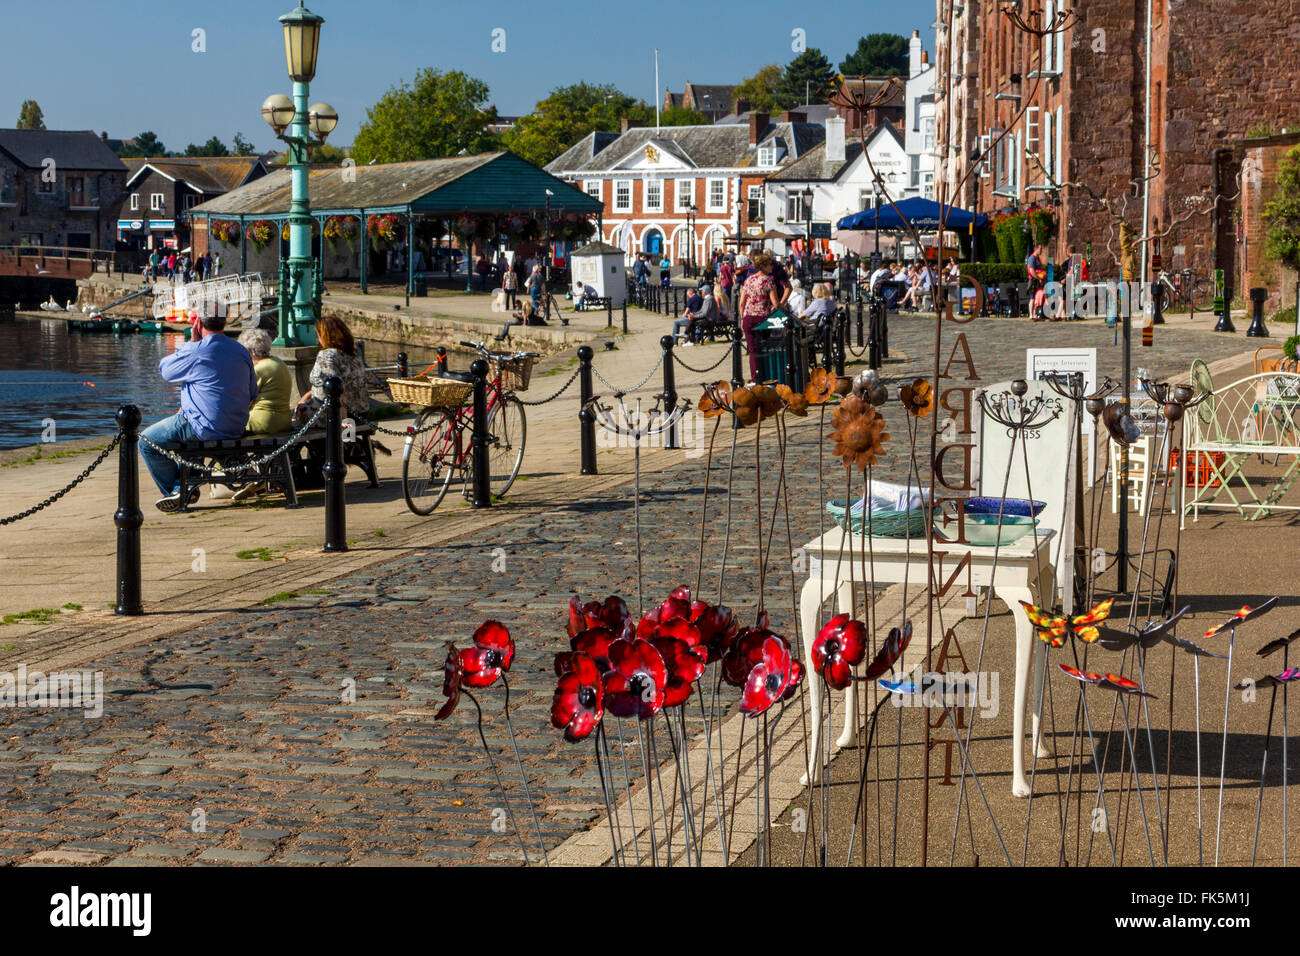 Colorful Ceramics at The Historic Old Cellars with River Exe and Visitors enjoying a Sunny Autumn Afternoon, Exeter - Stock Image